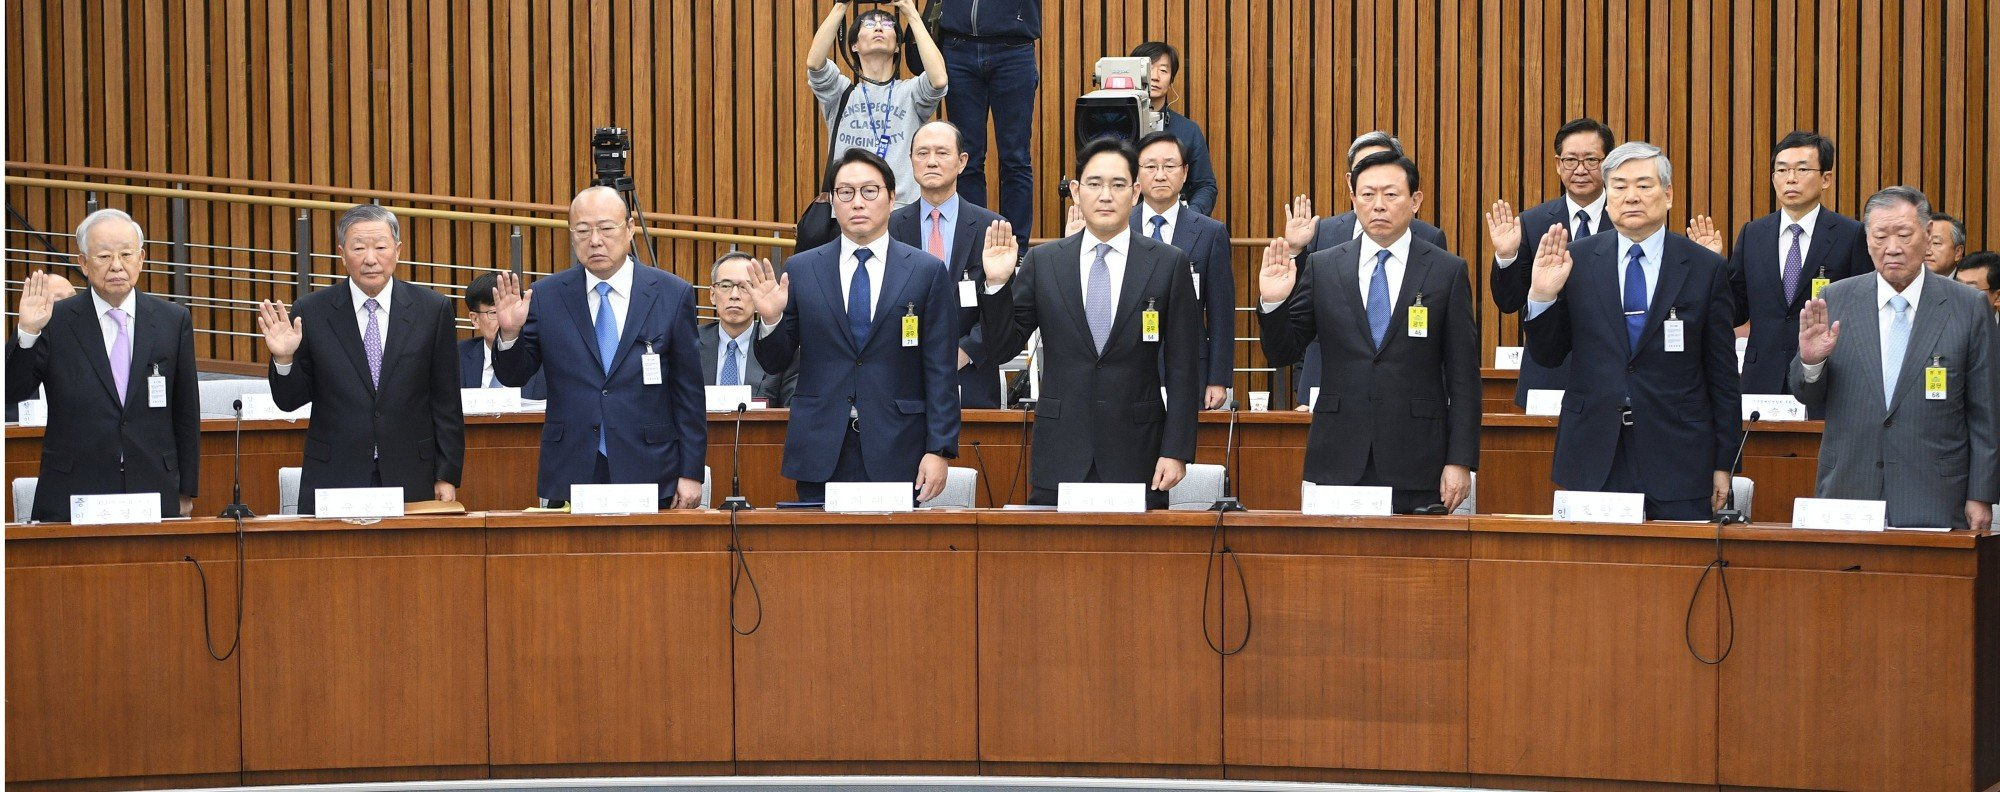 Chaebol leaders take an oath in Parliament. Photo: Reuters